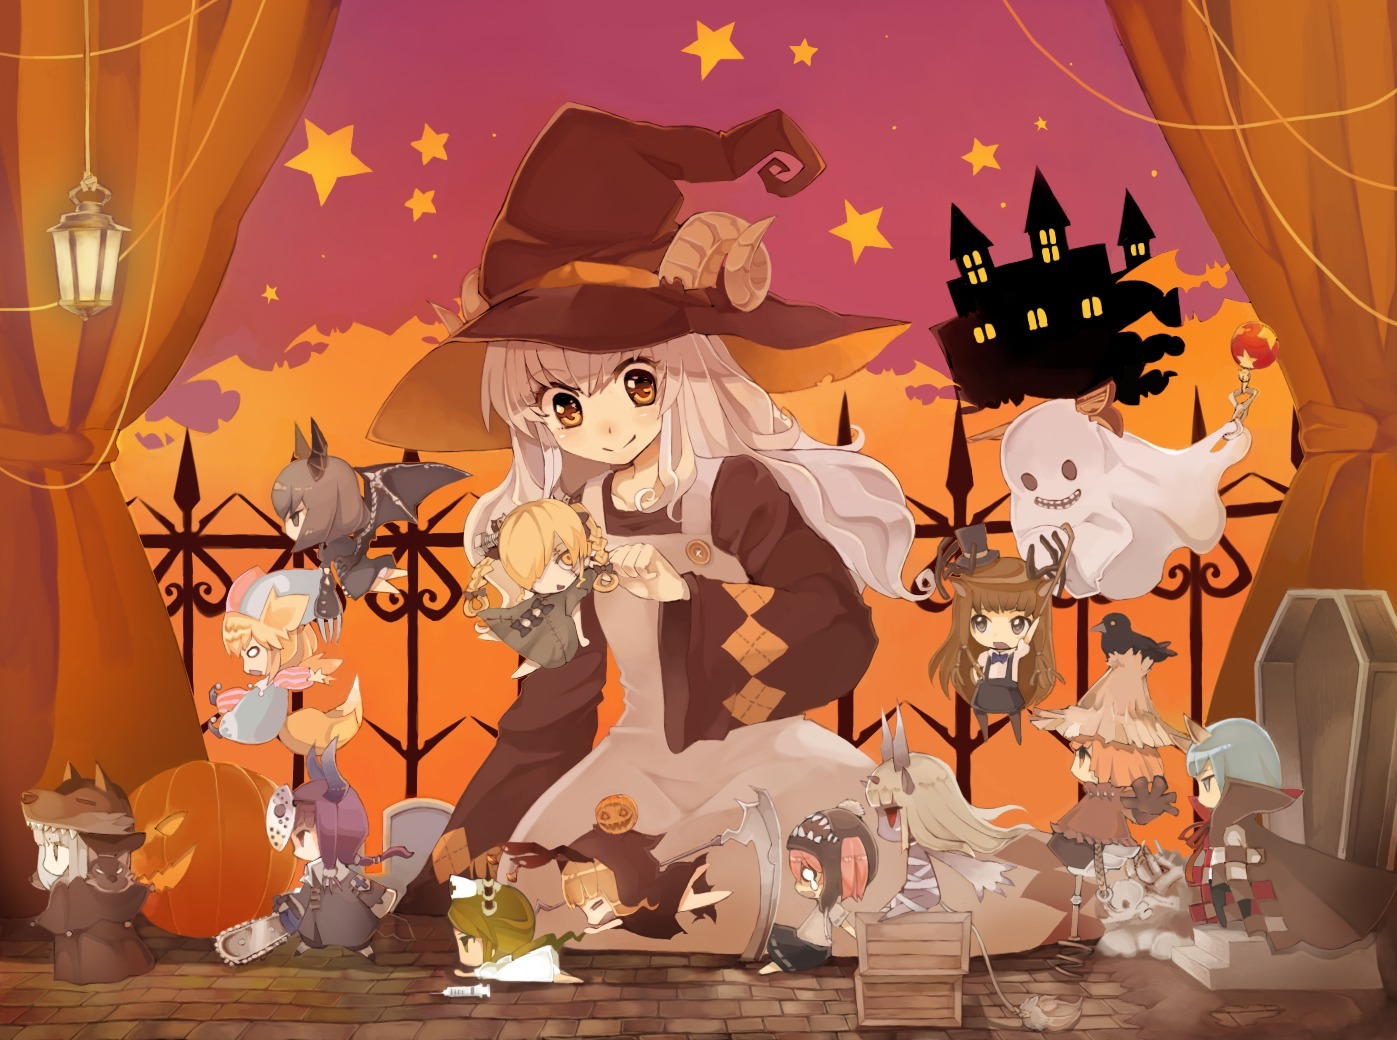 Cute Chibi Anime Wallpapers Wallpapers Happy Halloween Sevelina Games For Girls